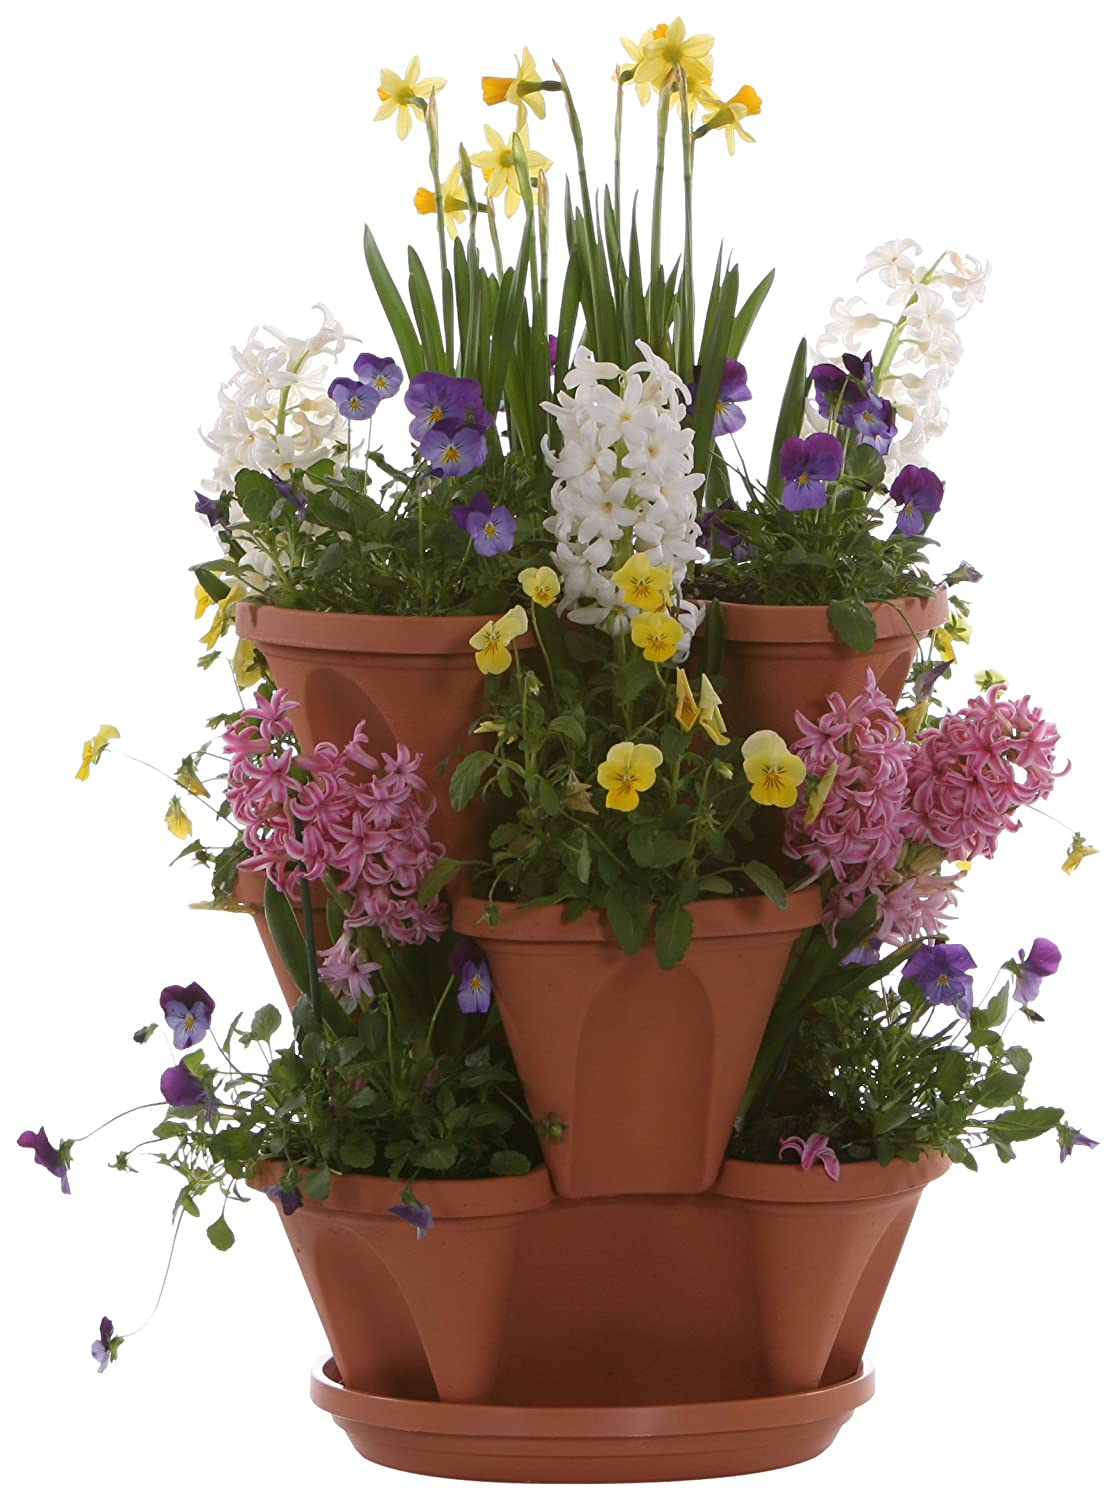 Flower Pots - Self Watering Planter